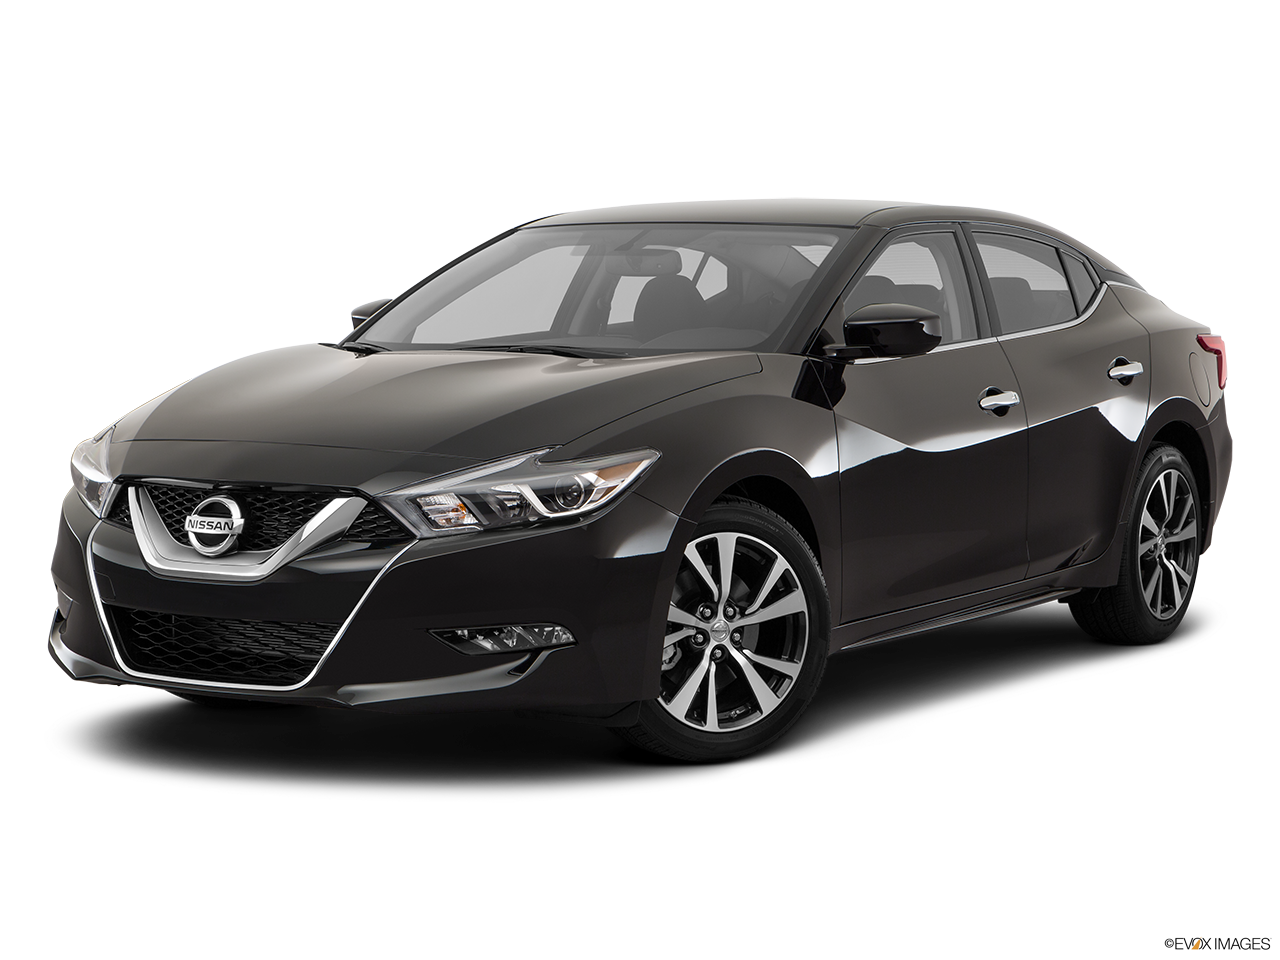 Test Drive A 2017 Nissan Maxima at Empire Nissan in Ontario